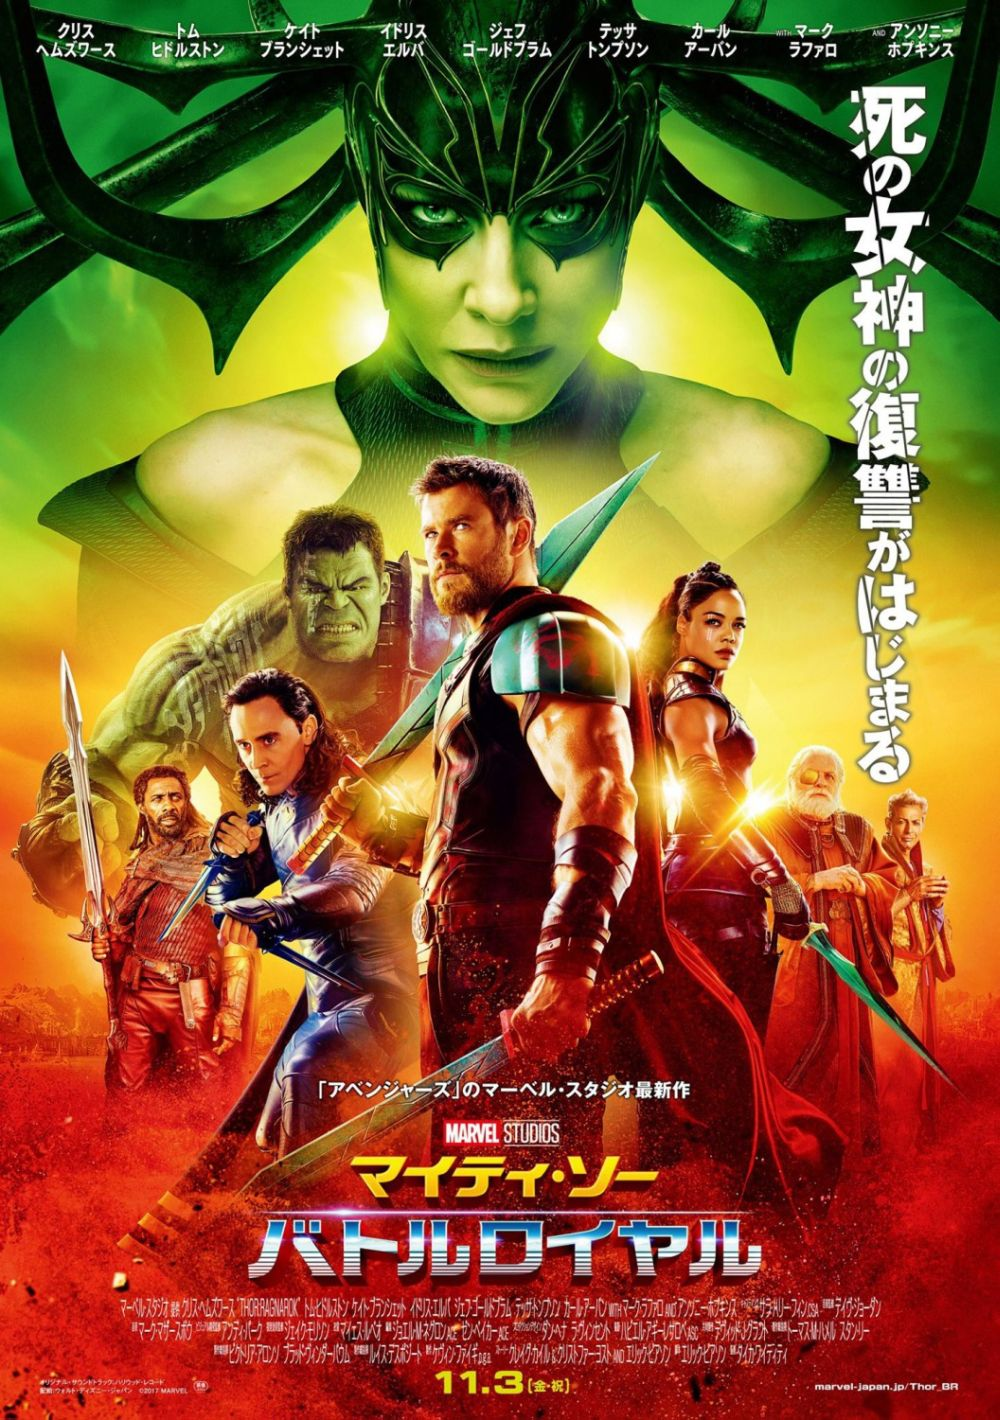 thor-ragnarok-international-poster-assembles-the-main-characters-in-the-story111